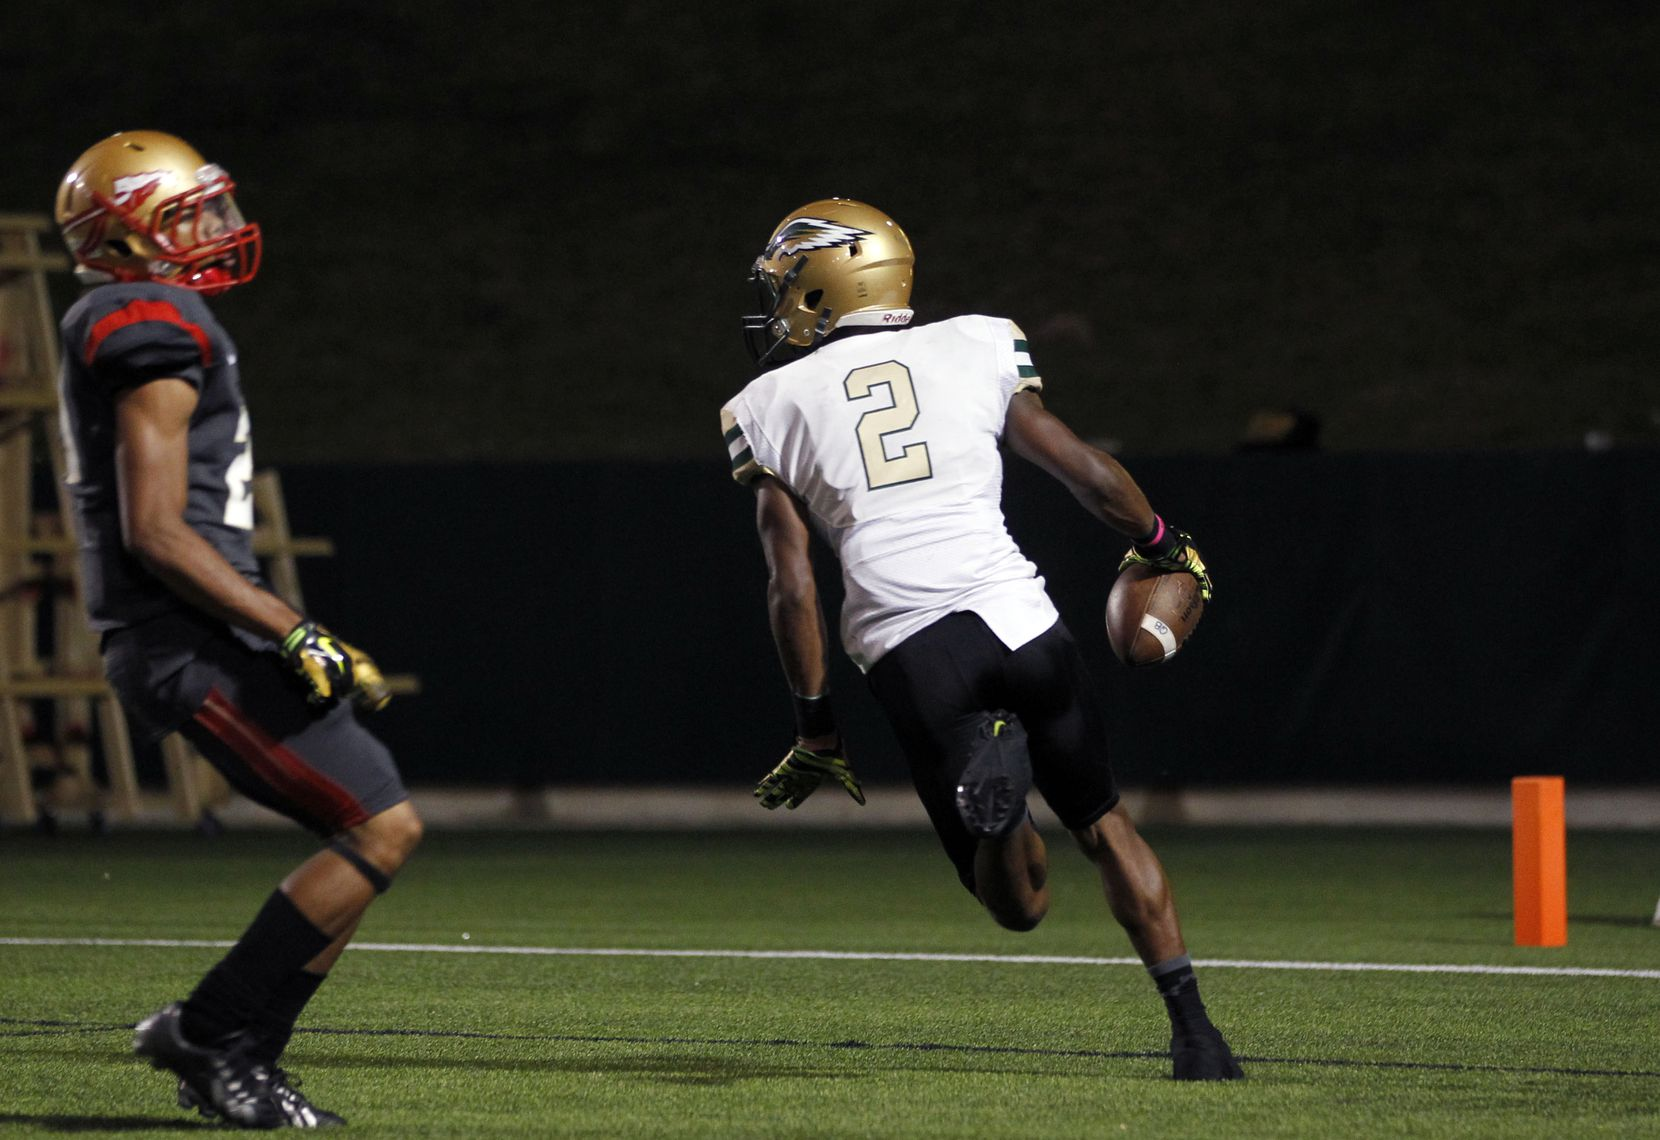 TXHSFB Desoto High School wide receiver James Proche' (2) plays against South Grand Prairie High School in Grand Prairie, Texas, Monday, October 20, 2014. Mike Stone/Special Contributor